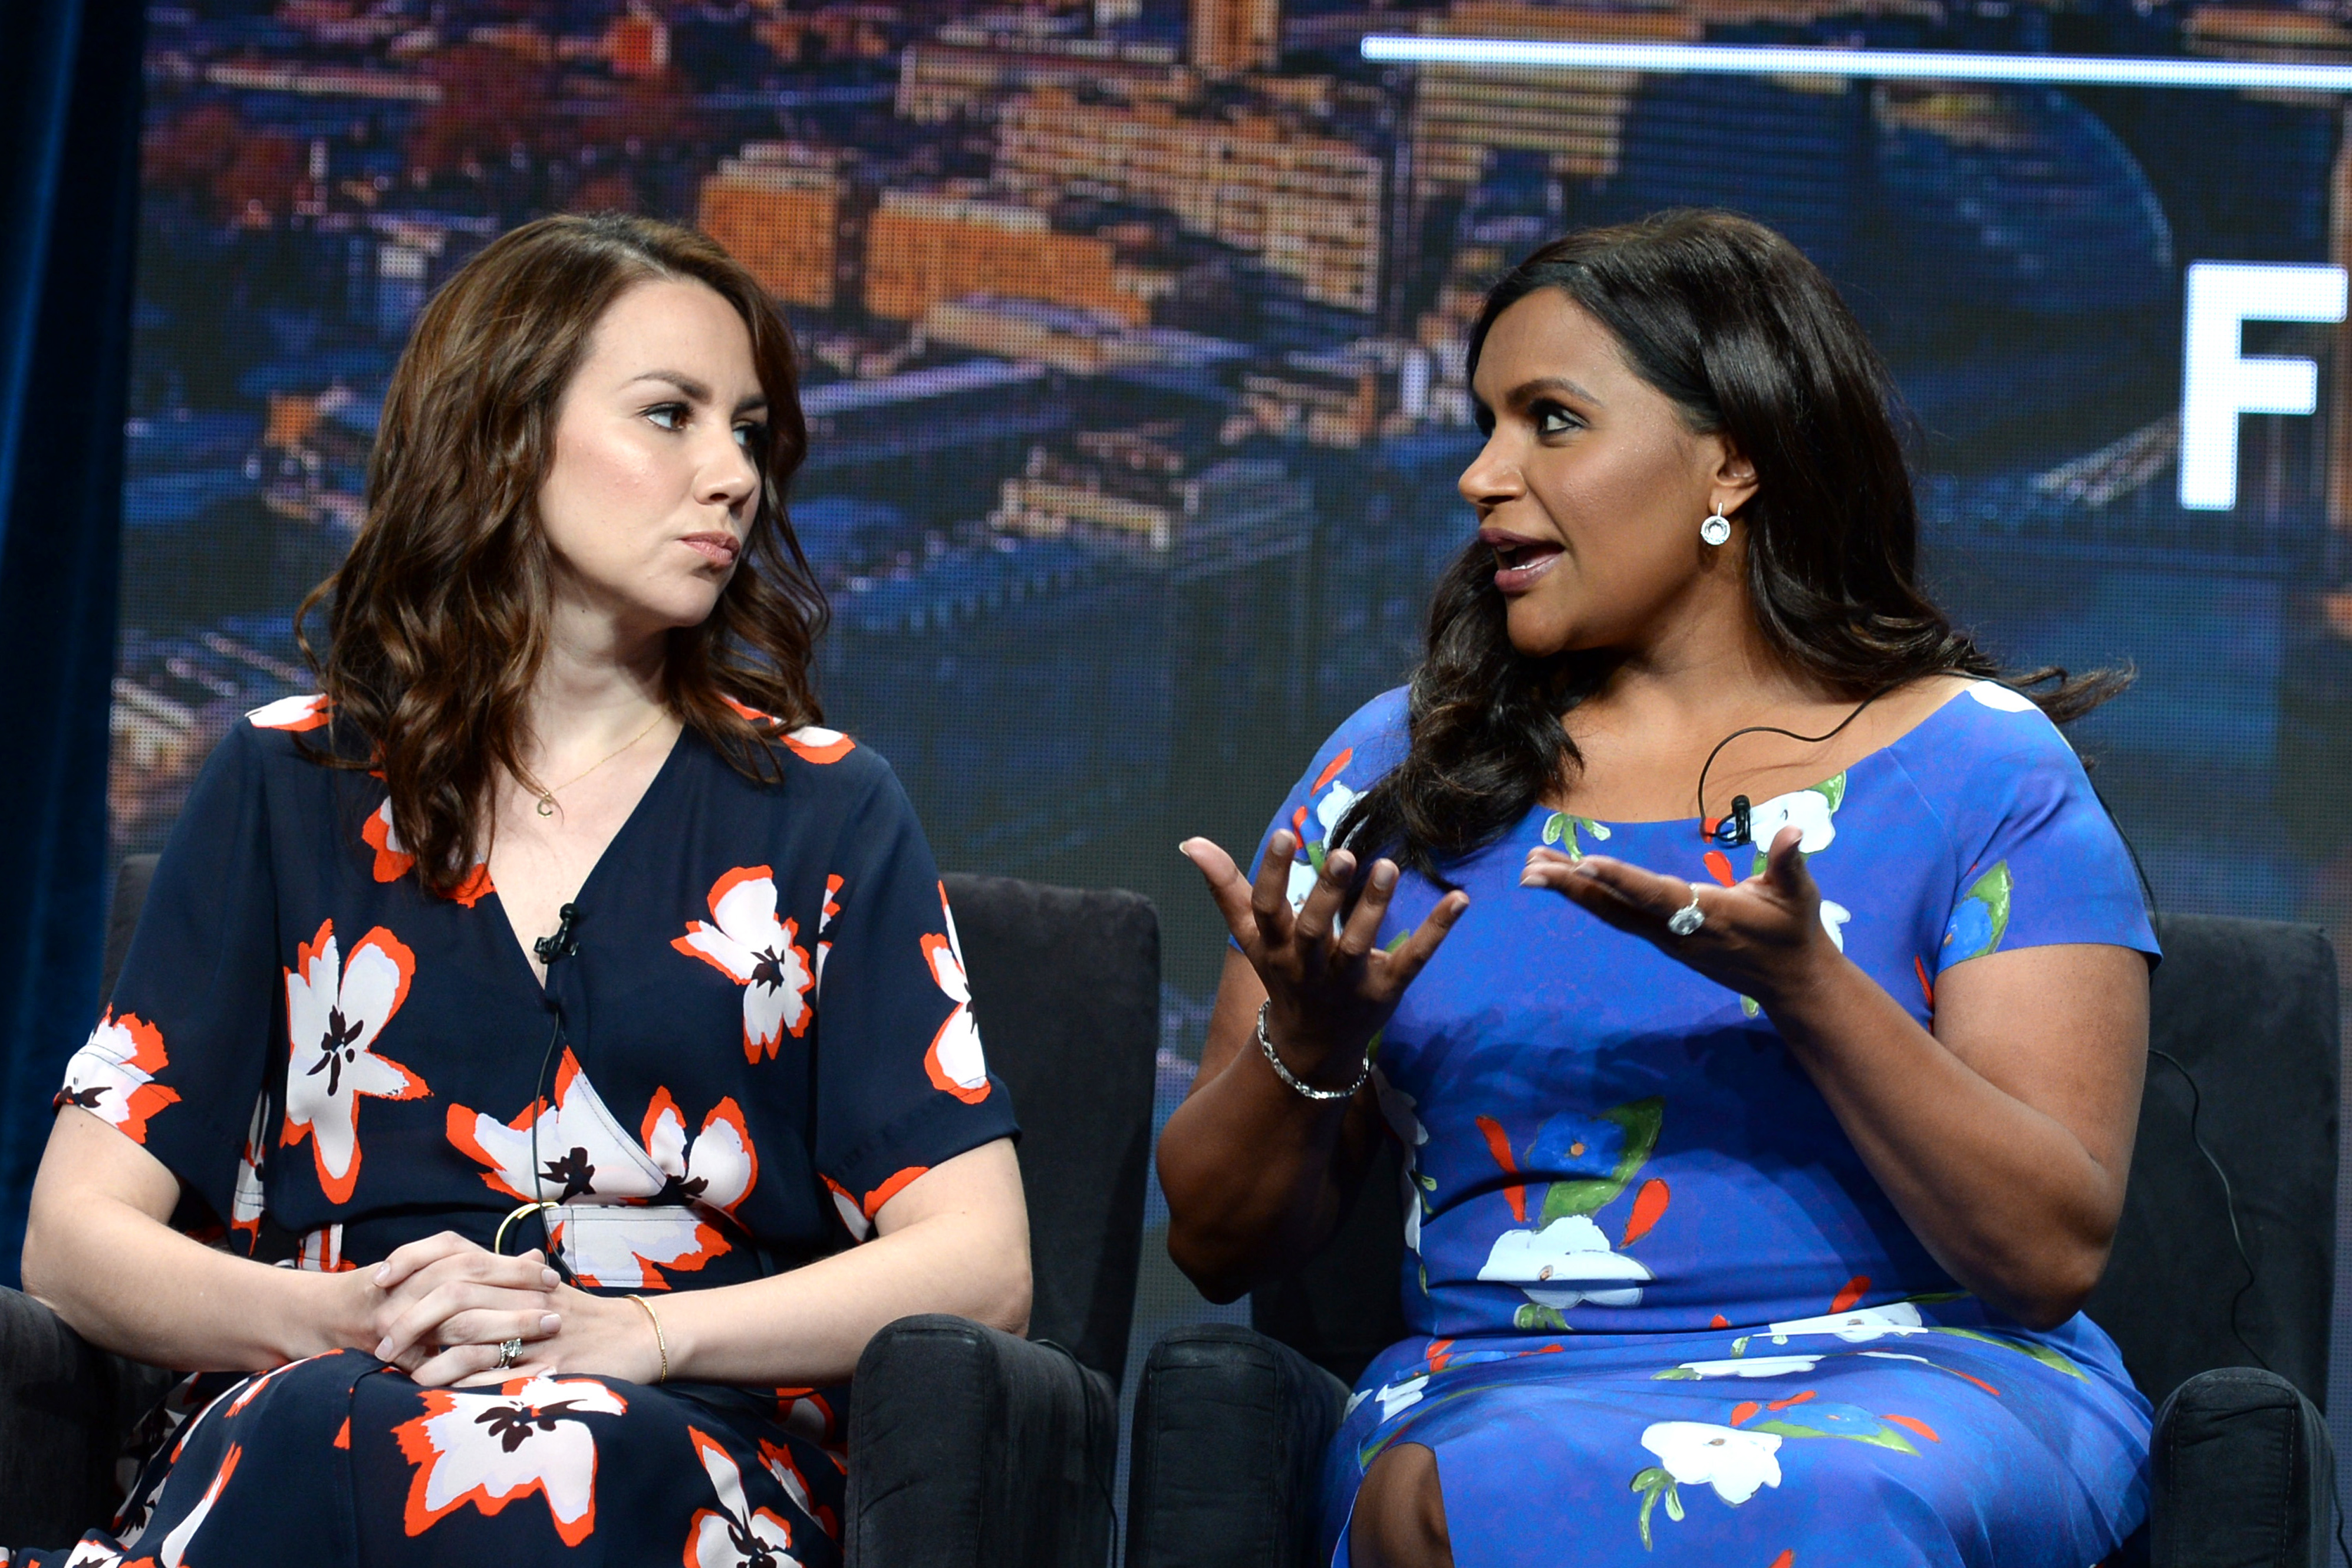 Tracey Wigfield and Mindy Kaling speak onstage during the Hulu 2019 Summer TCA Press Tour at The Beverly Hilton Hotel on July 26, 2019 in Beverly Hills, California. [Andrew Toth/Getty Images for Hulu)